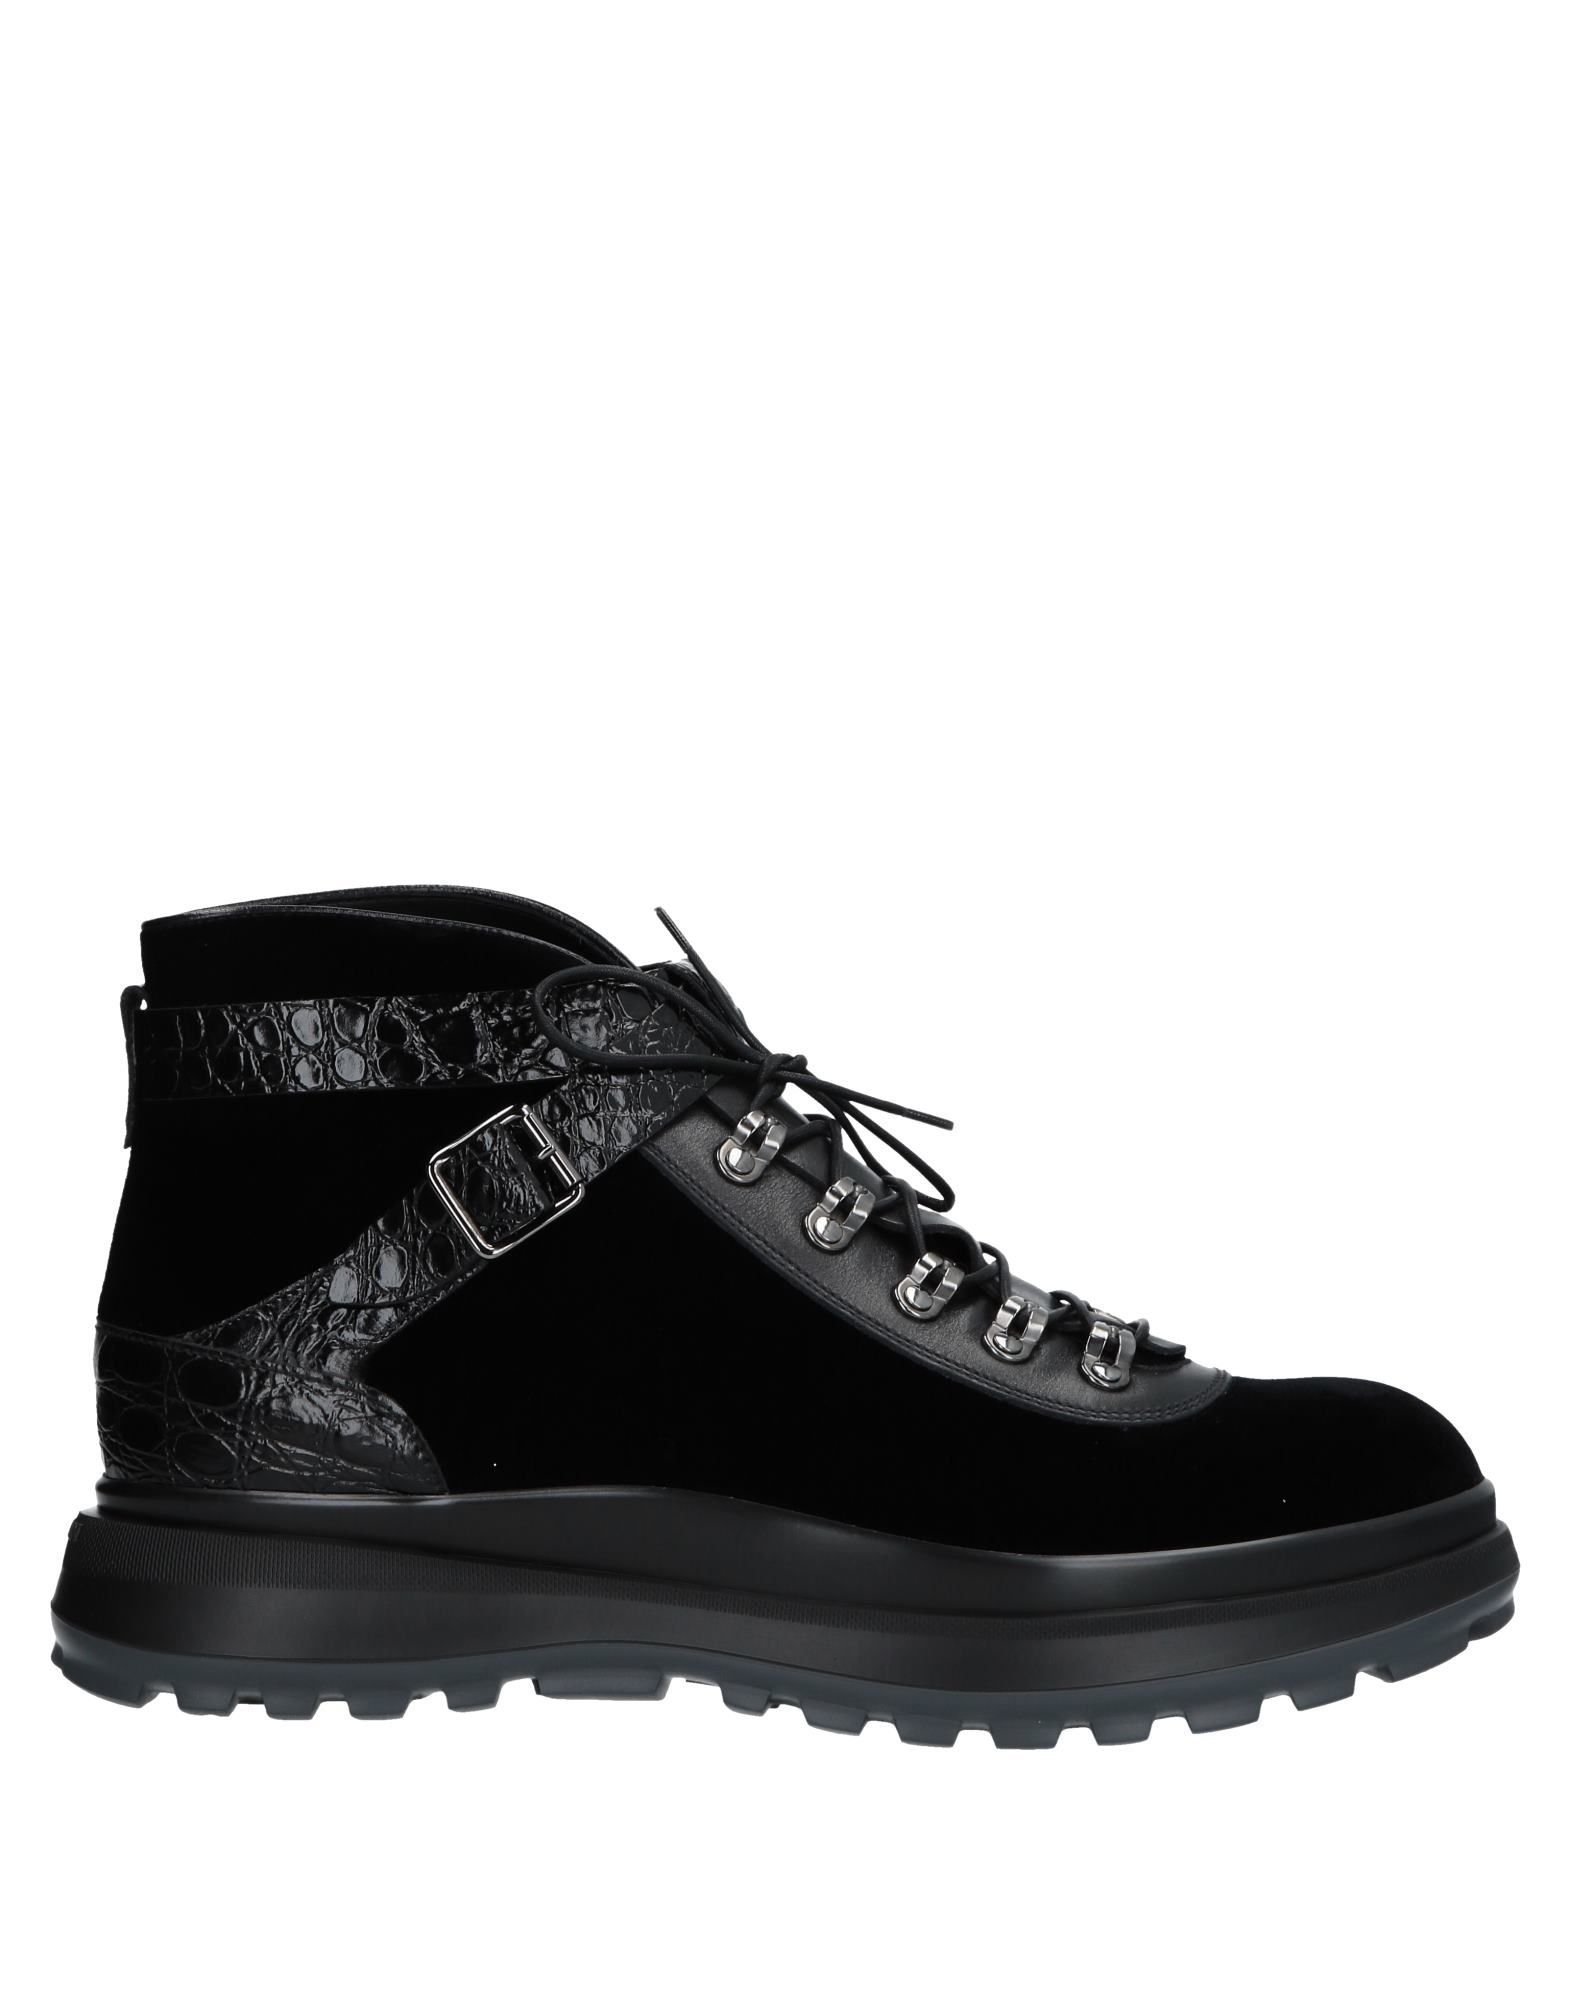 newest collection 4feef f95a8 Sneakers Giorgio Armani Homme - Sneakers Giorgio Armani Noir Dédouanement  saisonnier